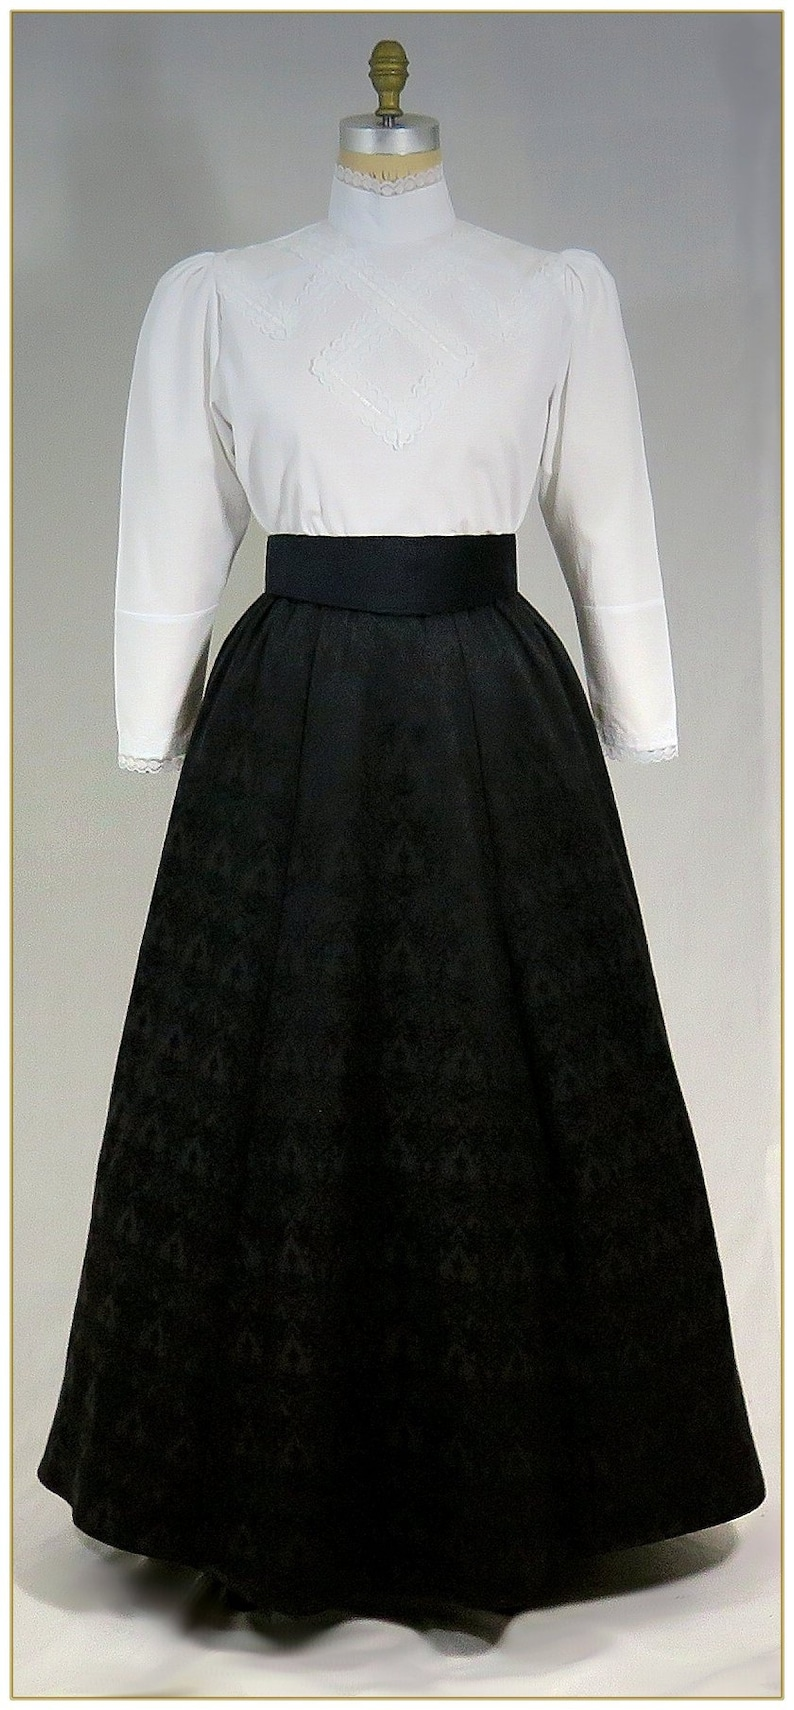 Victorian Skirts | Bustle, Walking, Edwardian Skirts 1890-1905 Victorian Black Jacquard Skirt $68.00 AT vintagedancer.com